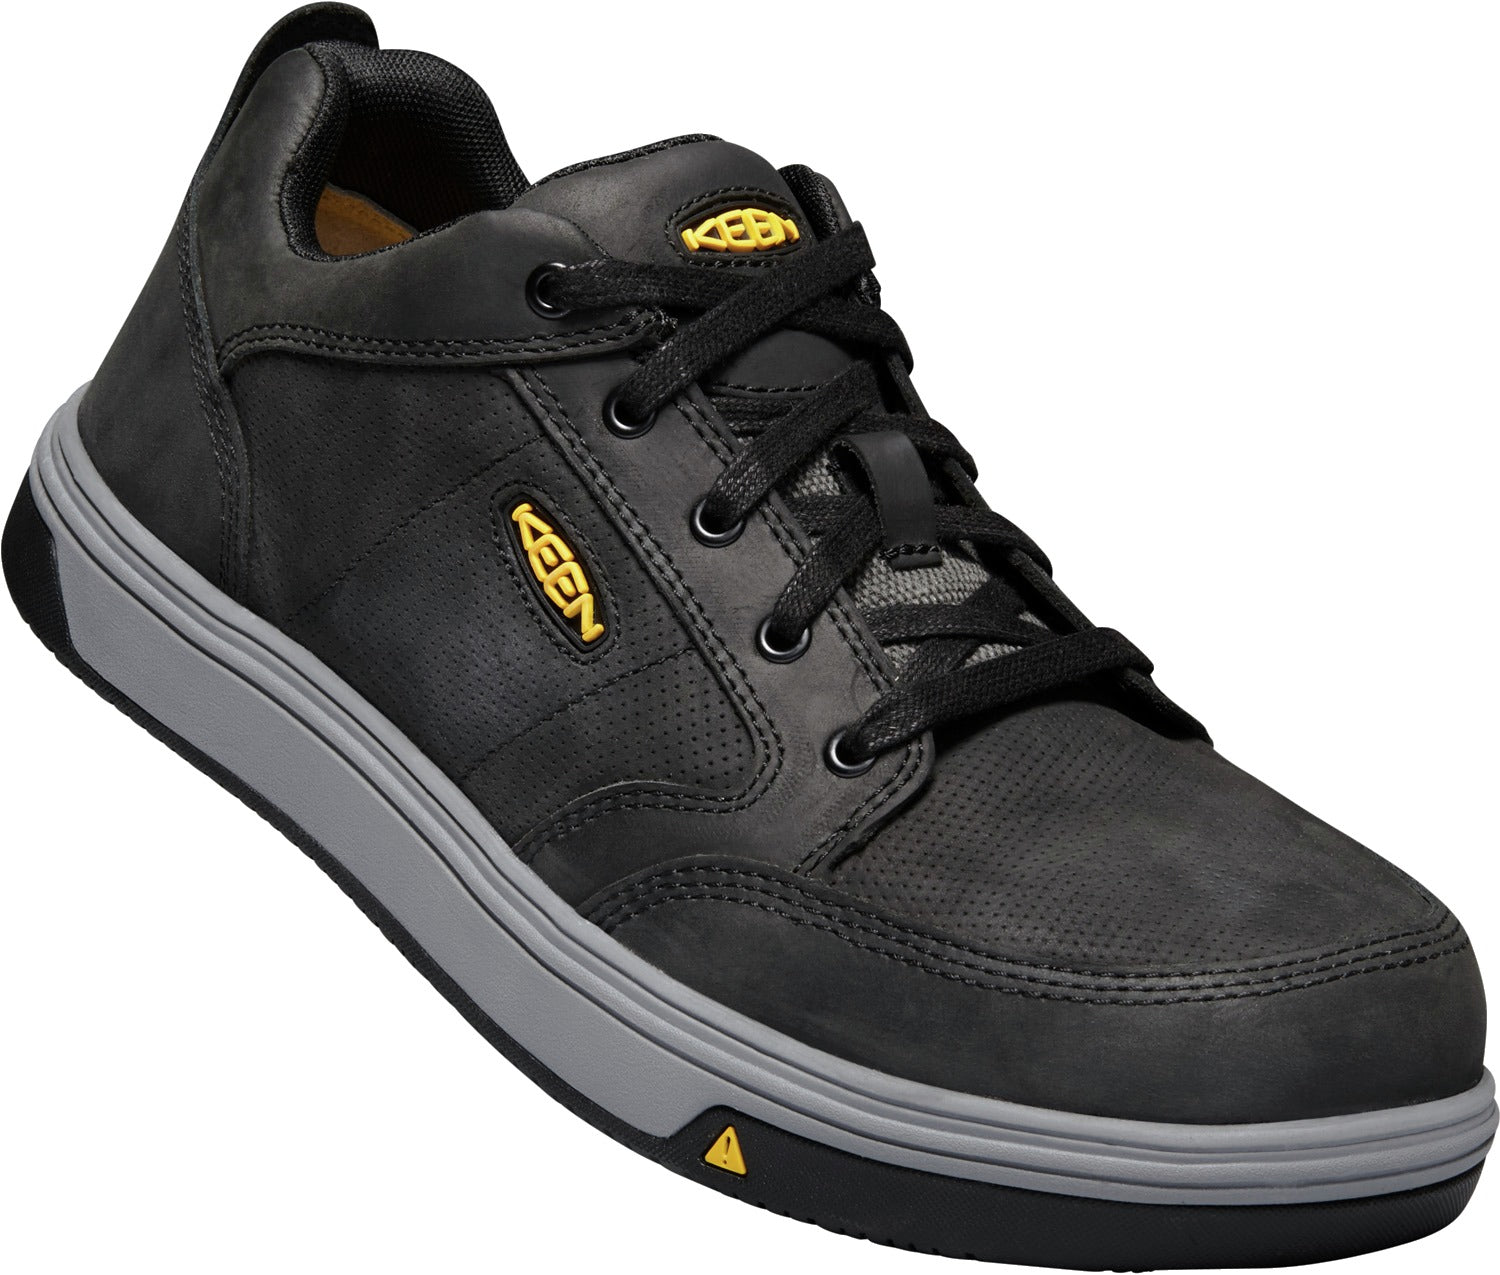 Redding ESD Aluminum Toe - Black / Grey